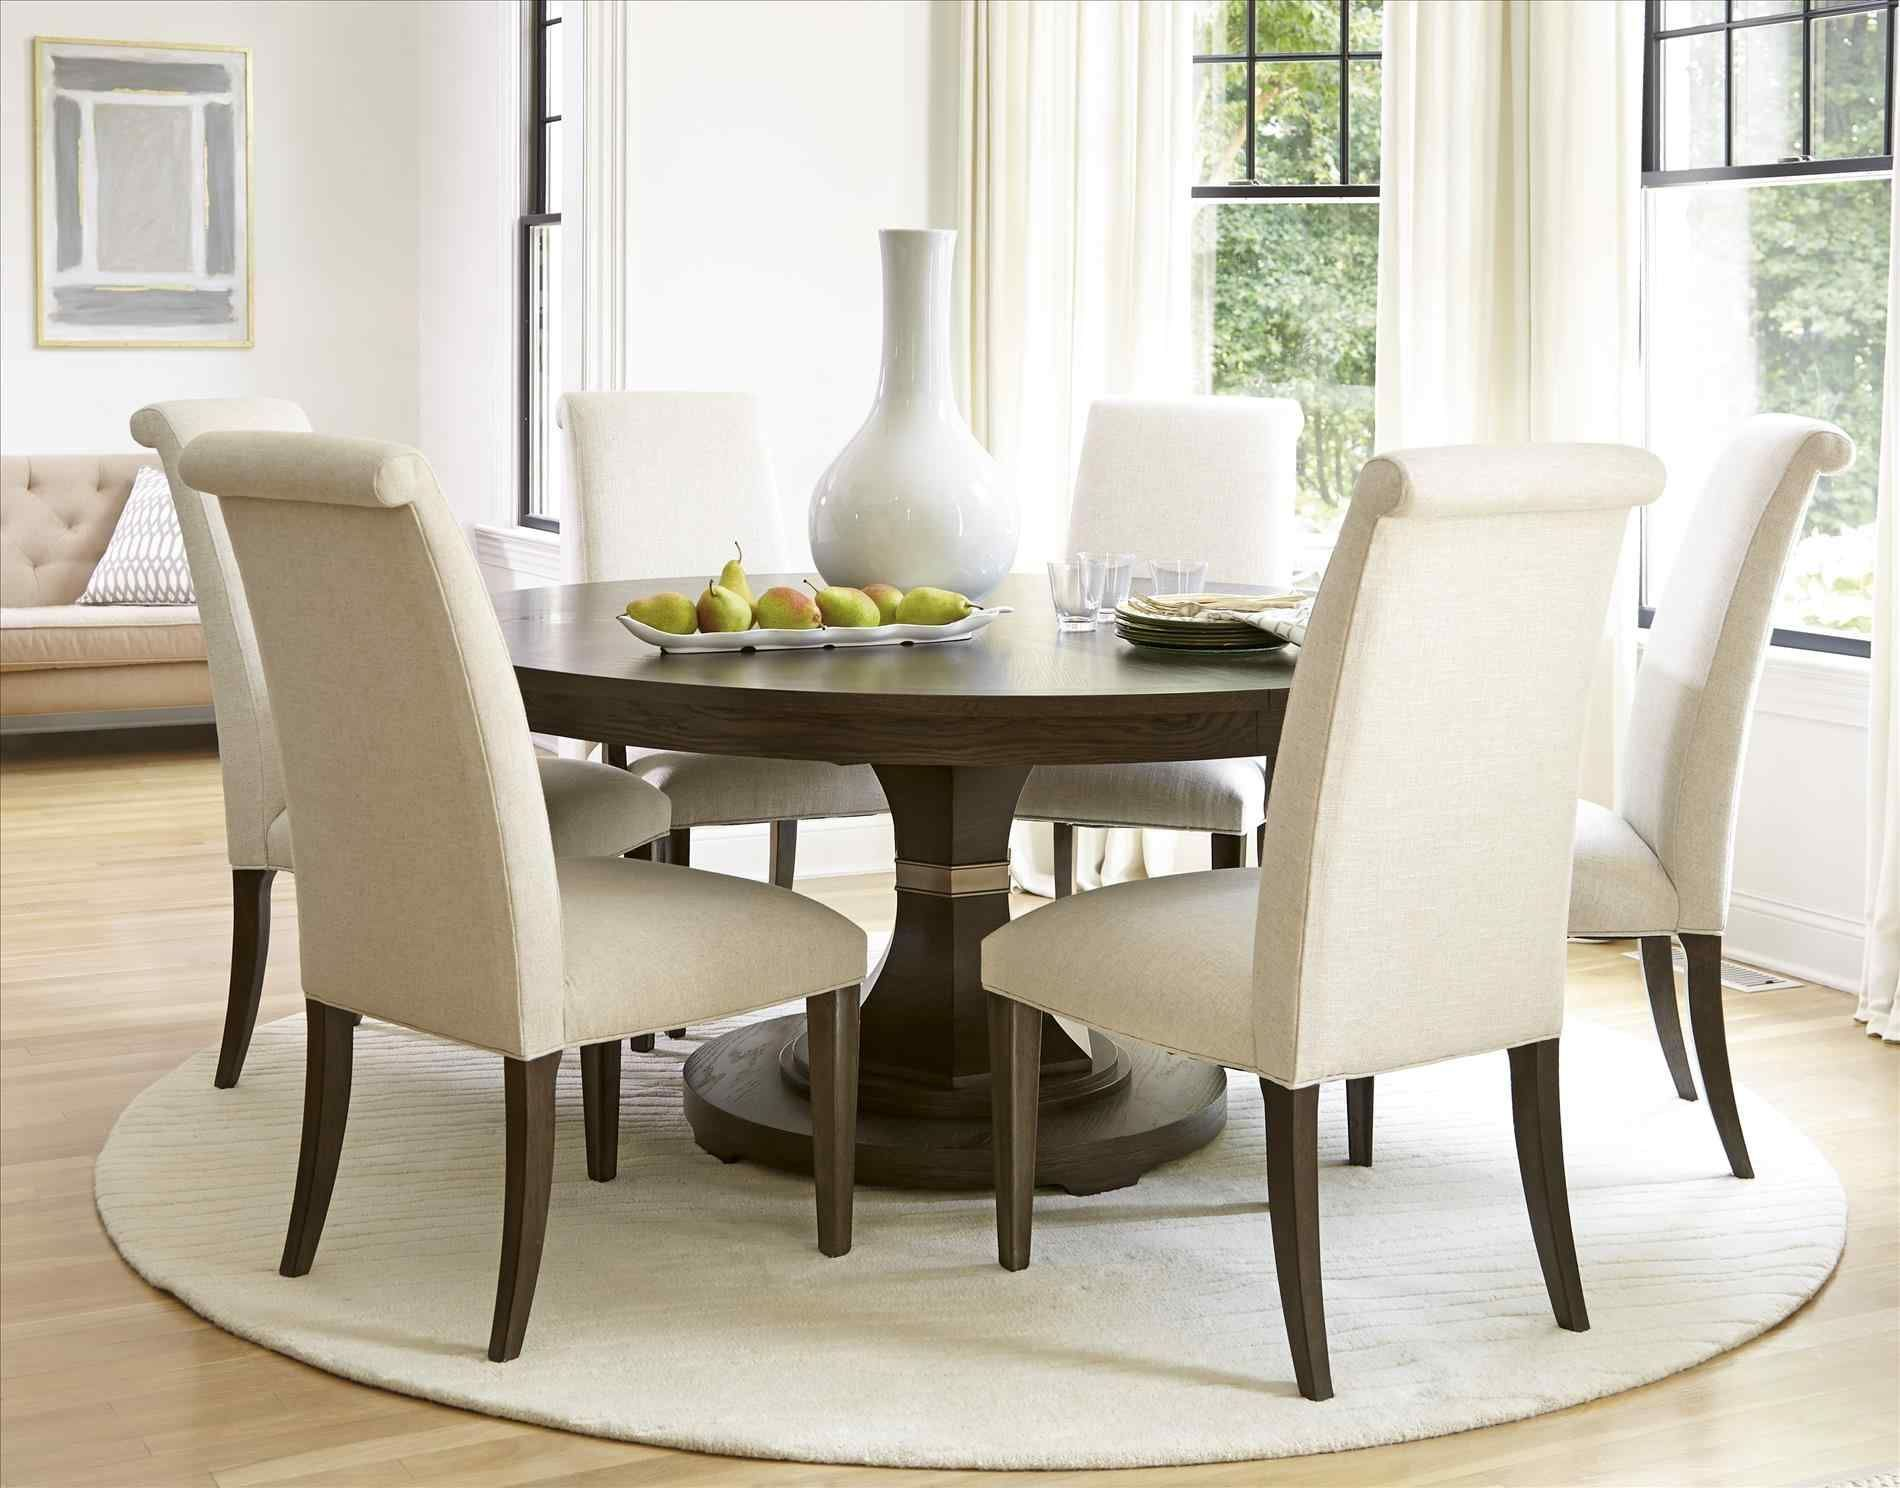 Dining Room Table Seats